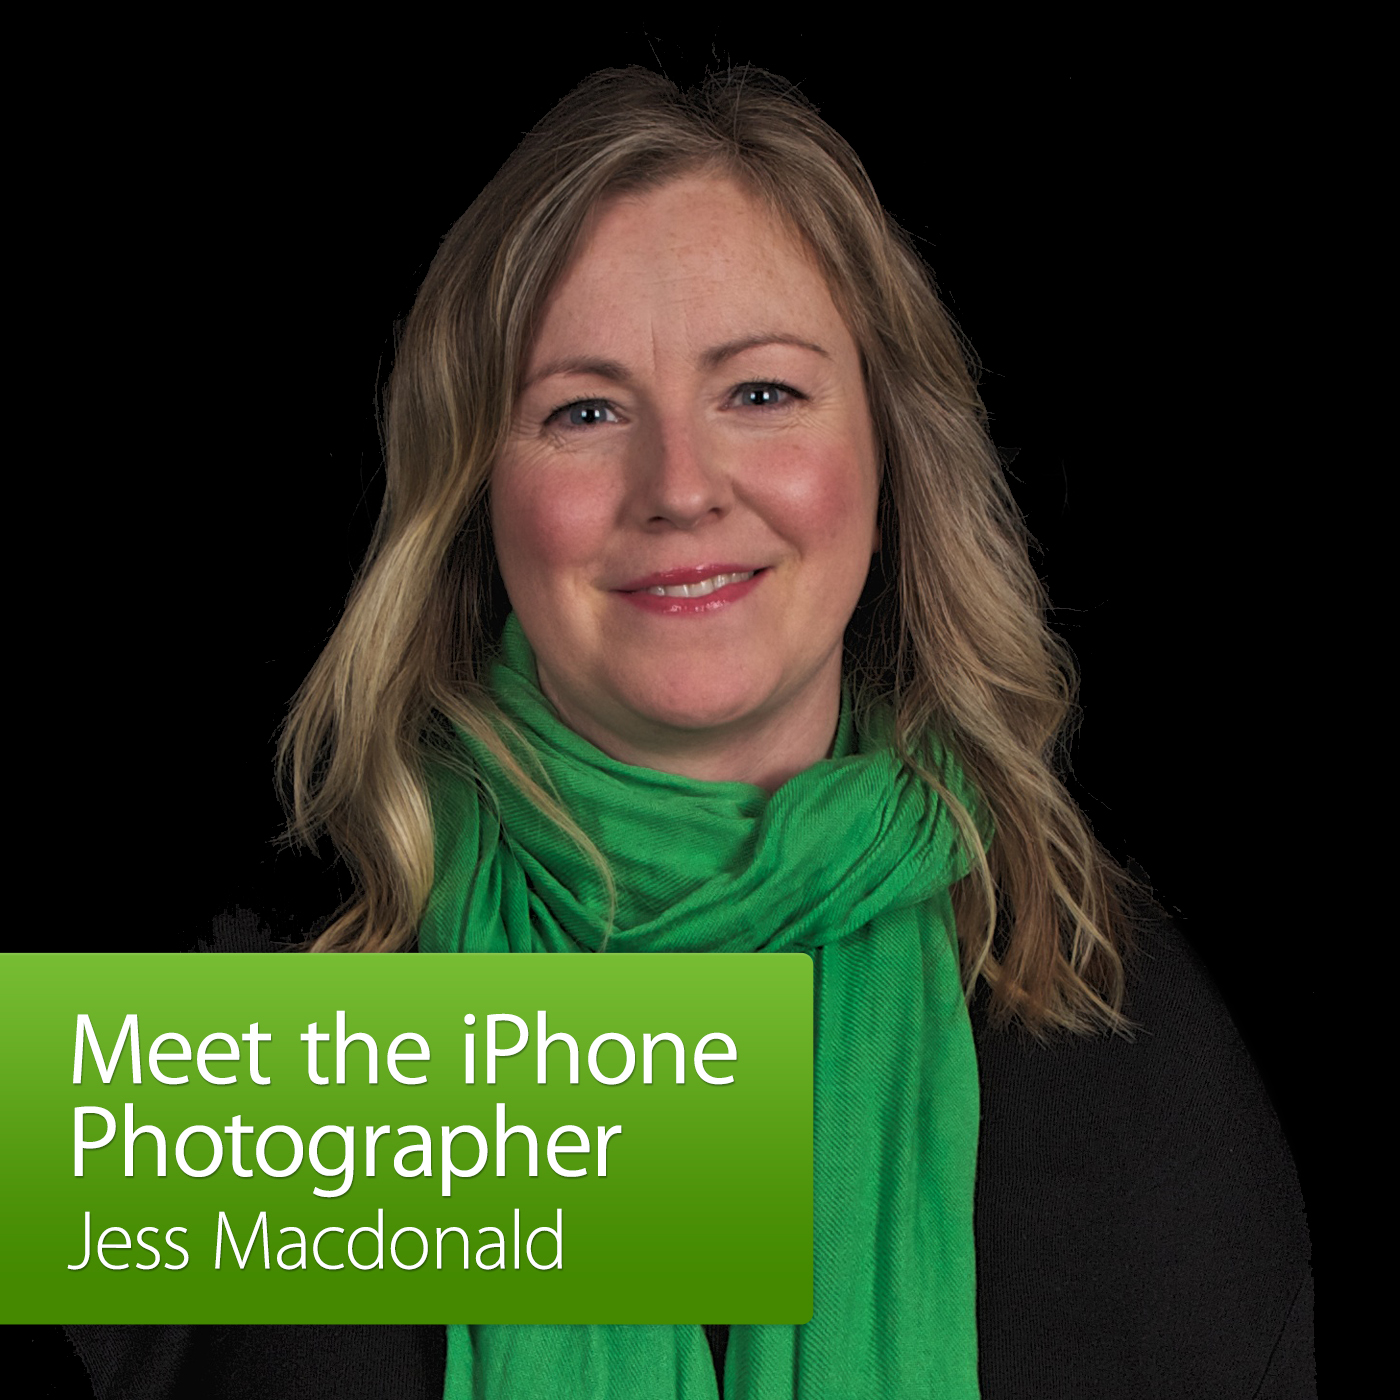 Jess Macdonald: Meet The iPhone Photographer